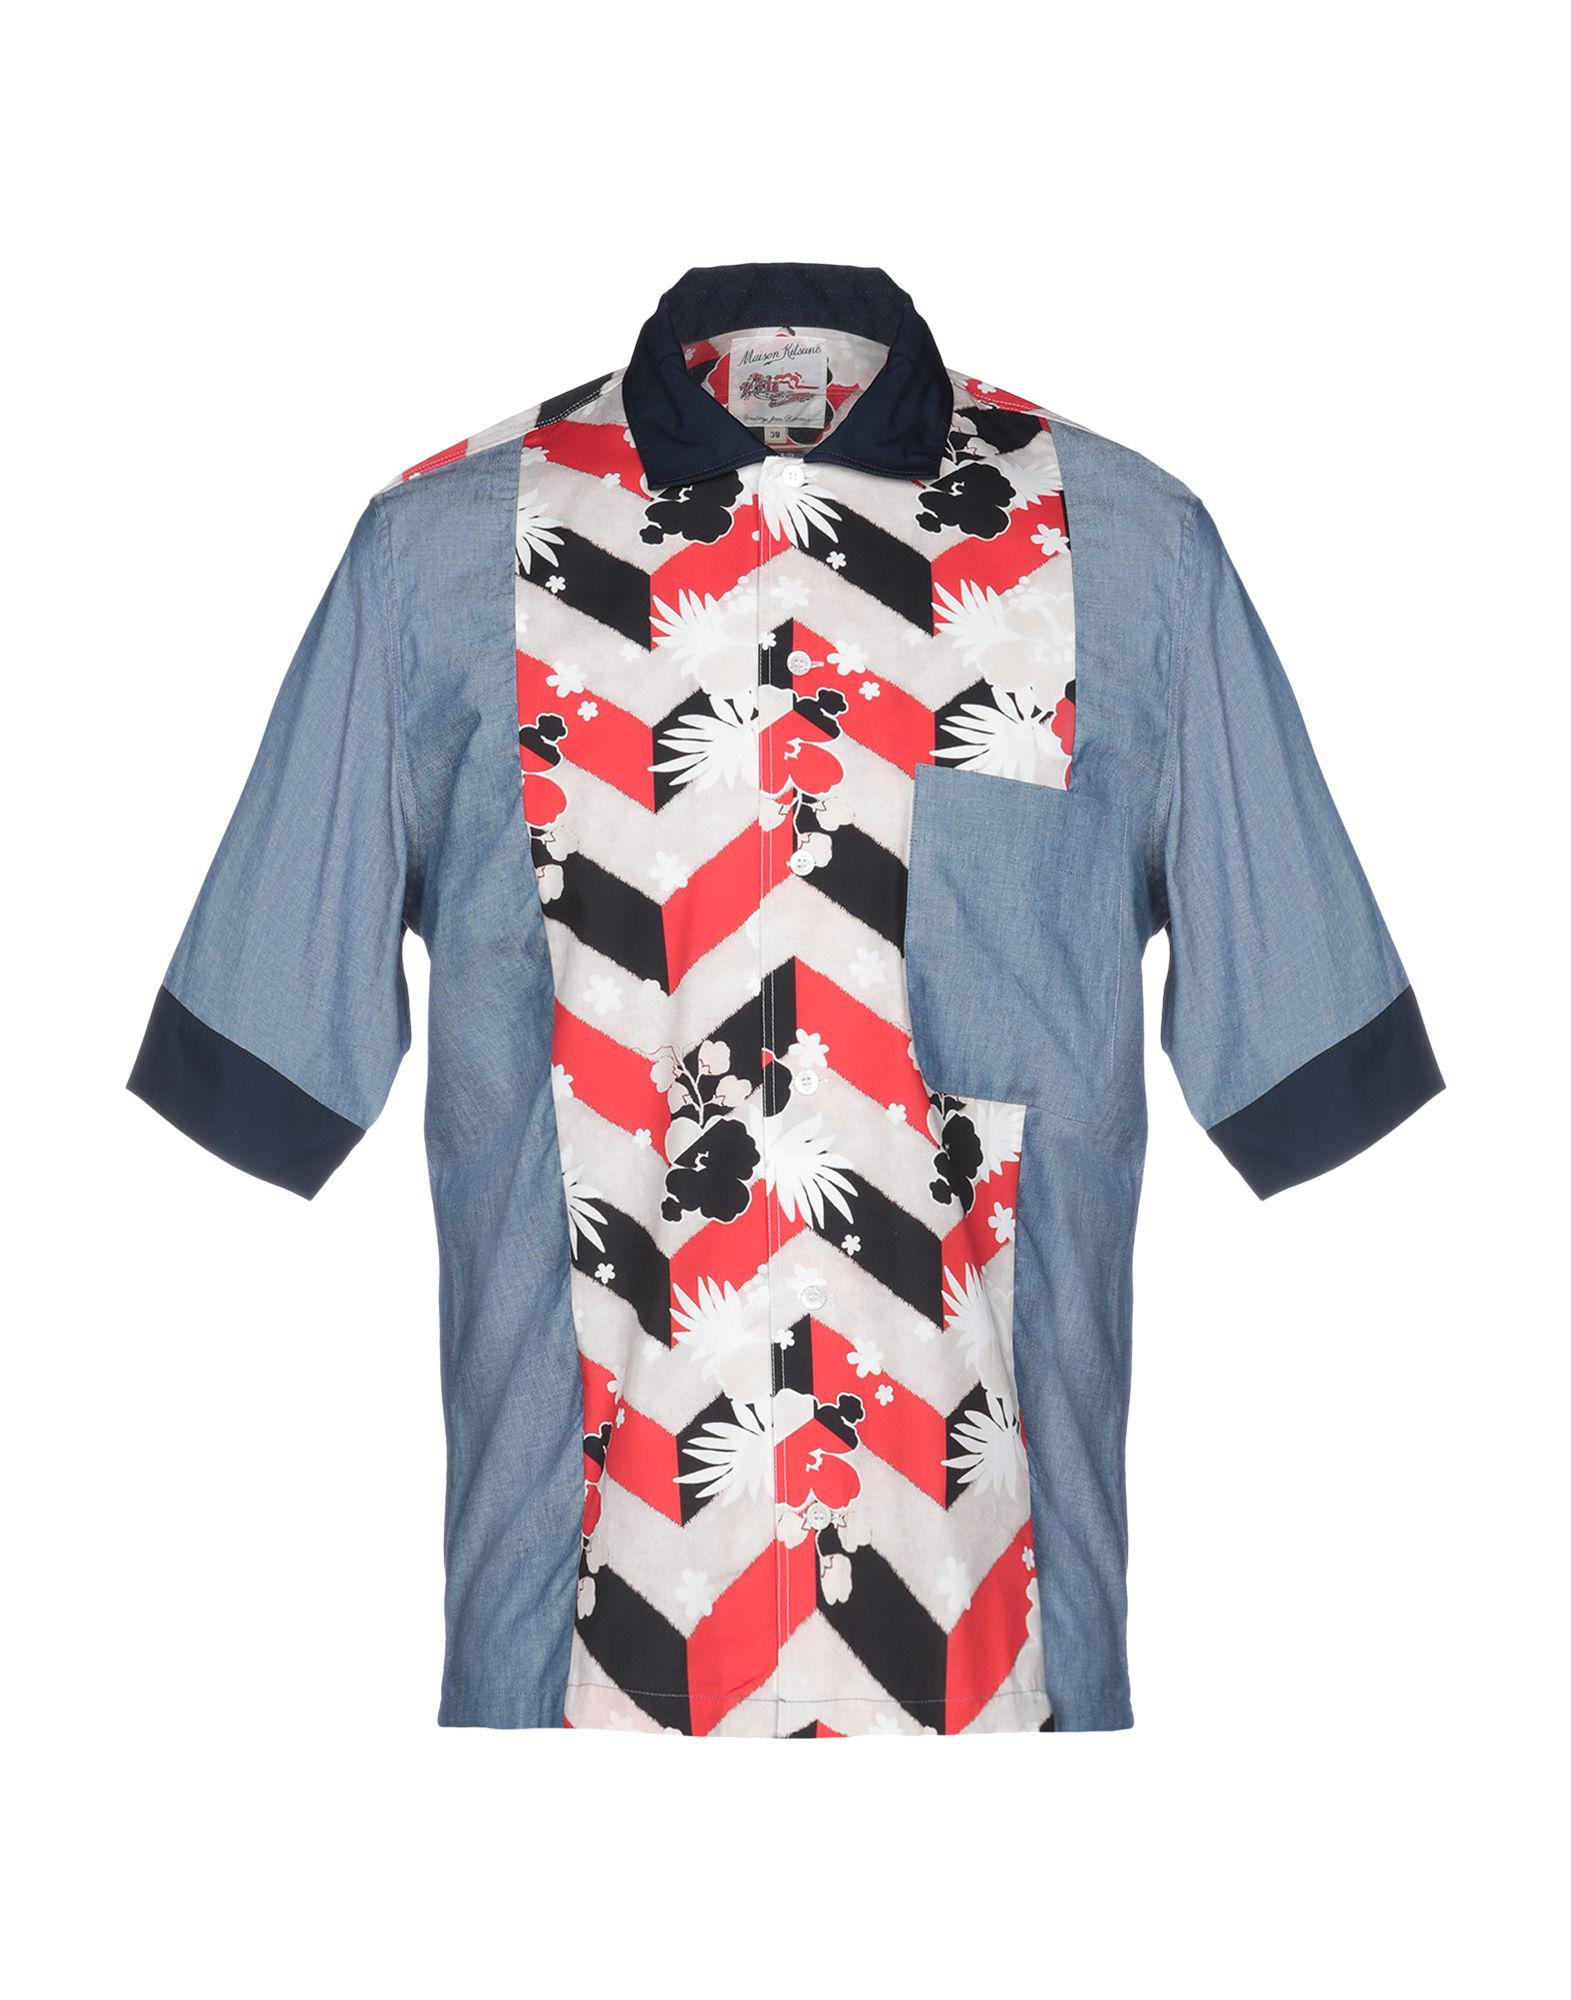 361ab63f7792 Maison Kitsuné. Blue Men s Venice Patched Short Sleeve Shirt. £84 From  YOOX. Free shipping with YOOX on ...